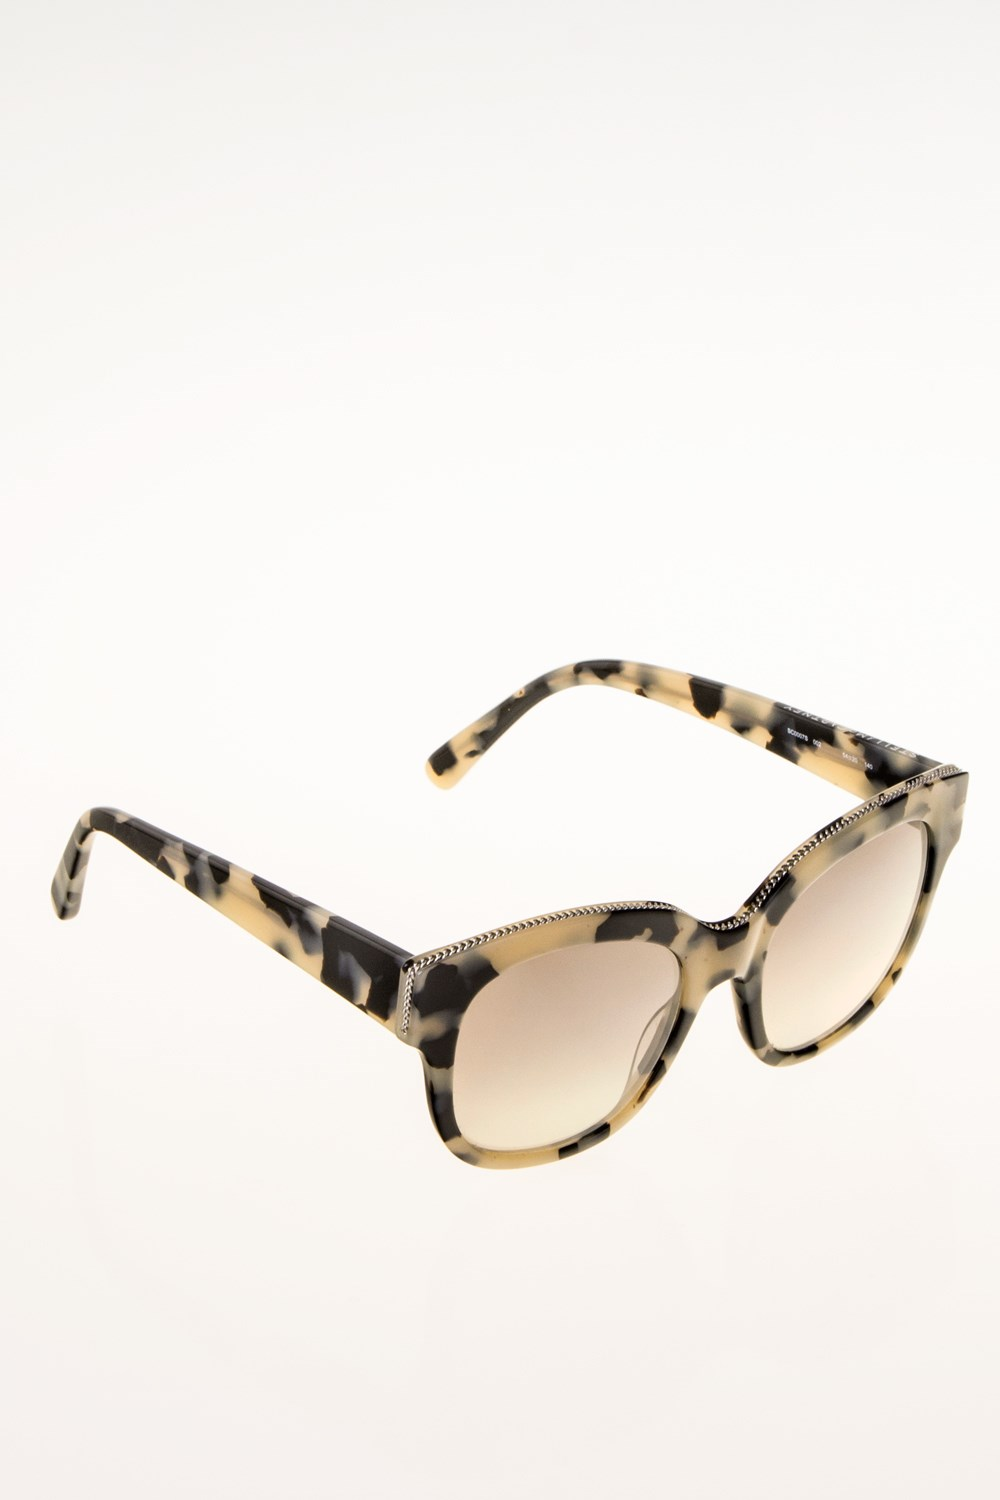 ad9b1a82b0 Stella McCartney SC0007s Tortoise Shell Acetate Sunglasses ...